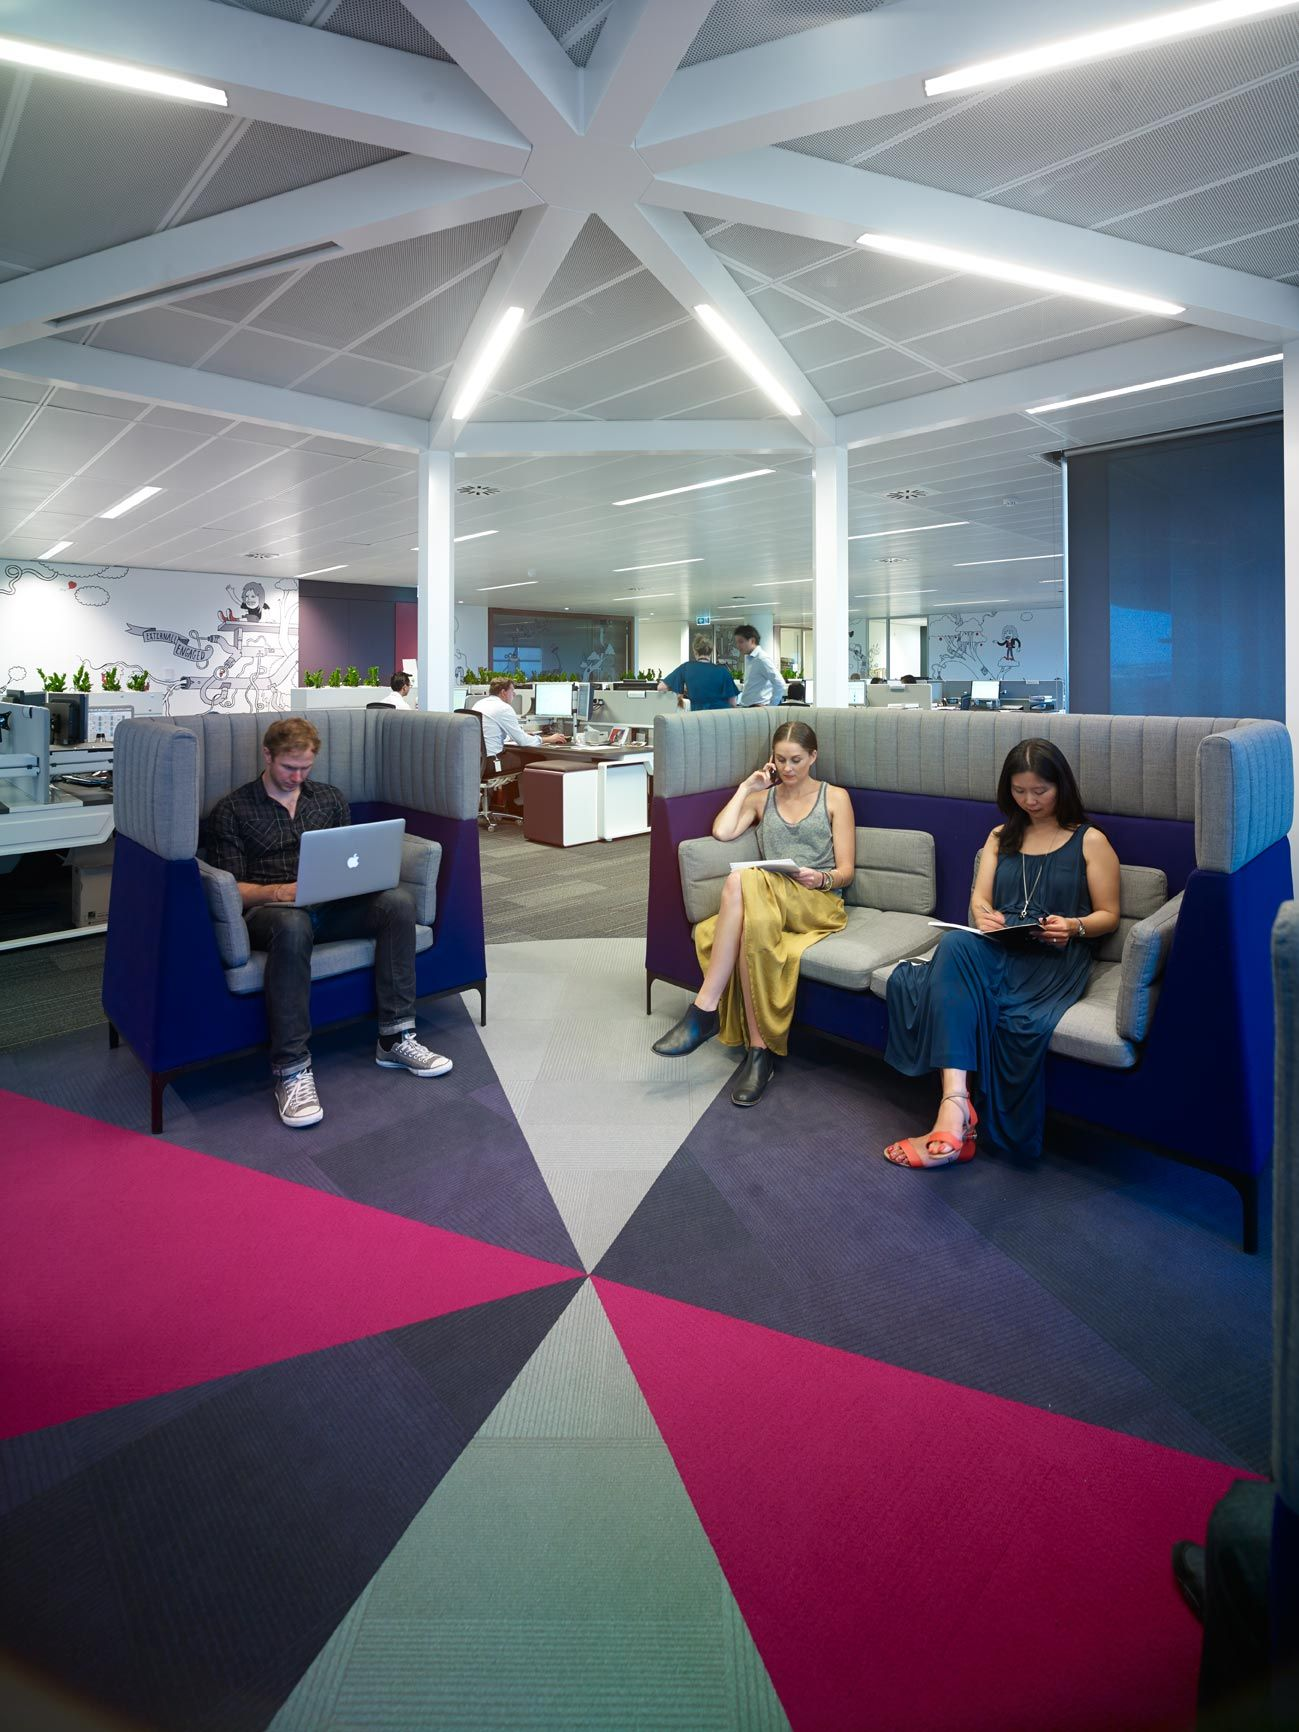 Carpet tiles can provide dimension and depth to standard for Office design standards